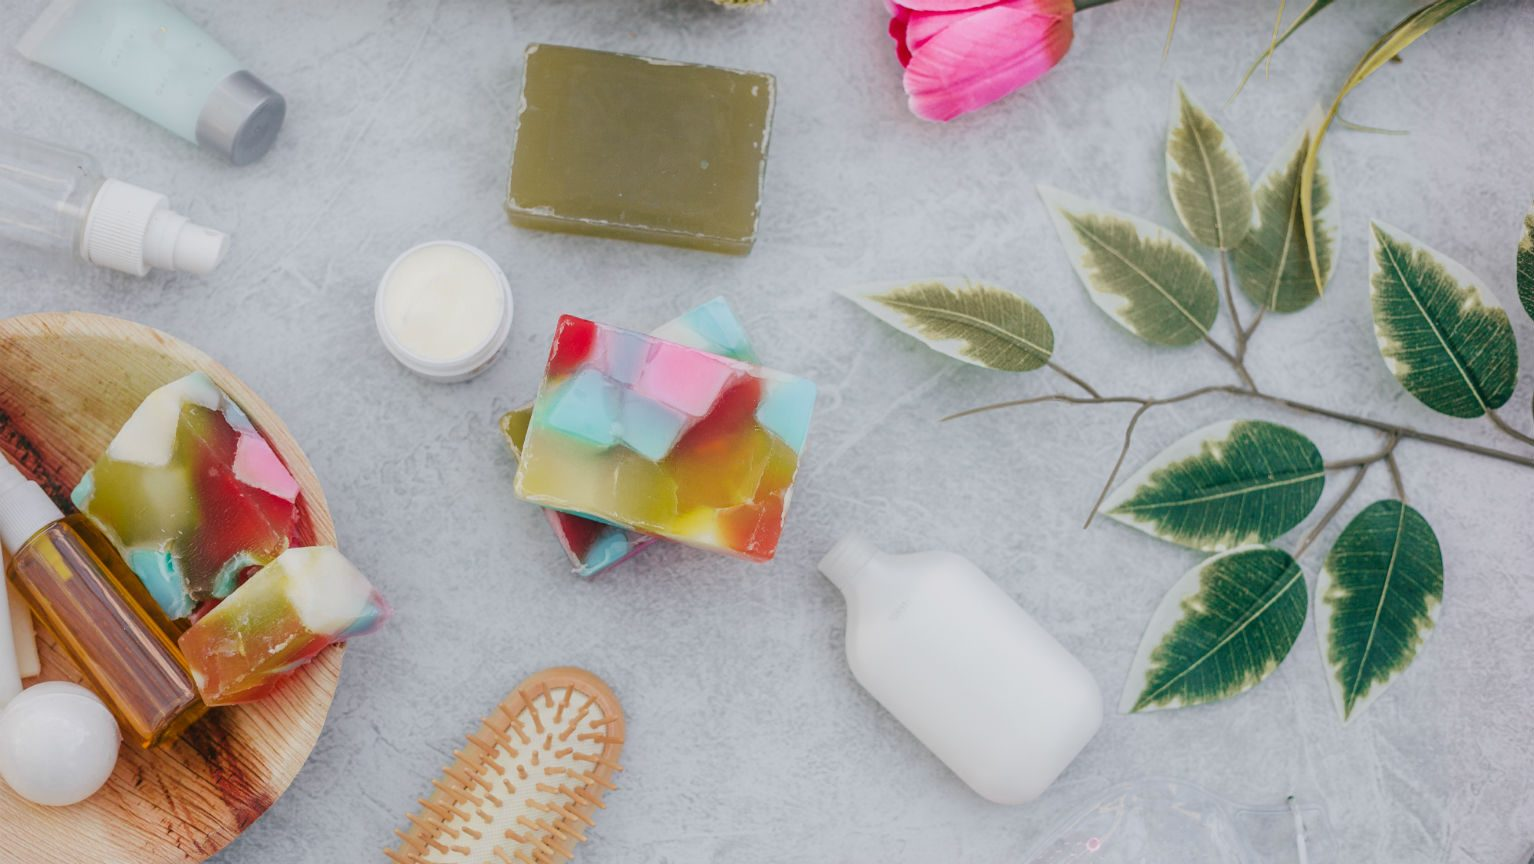 Spa soaps and products